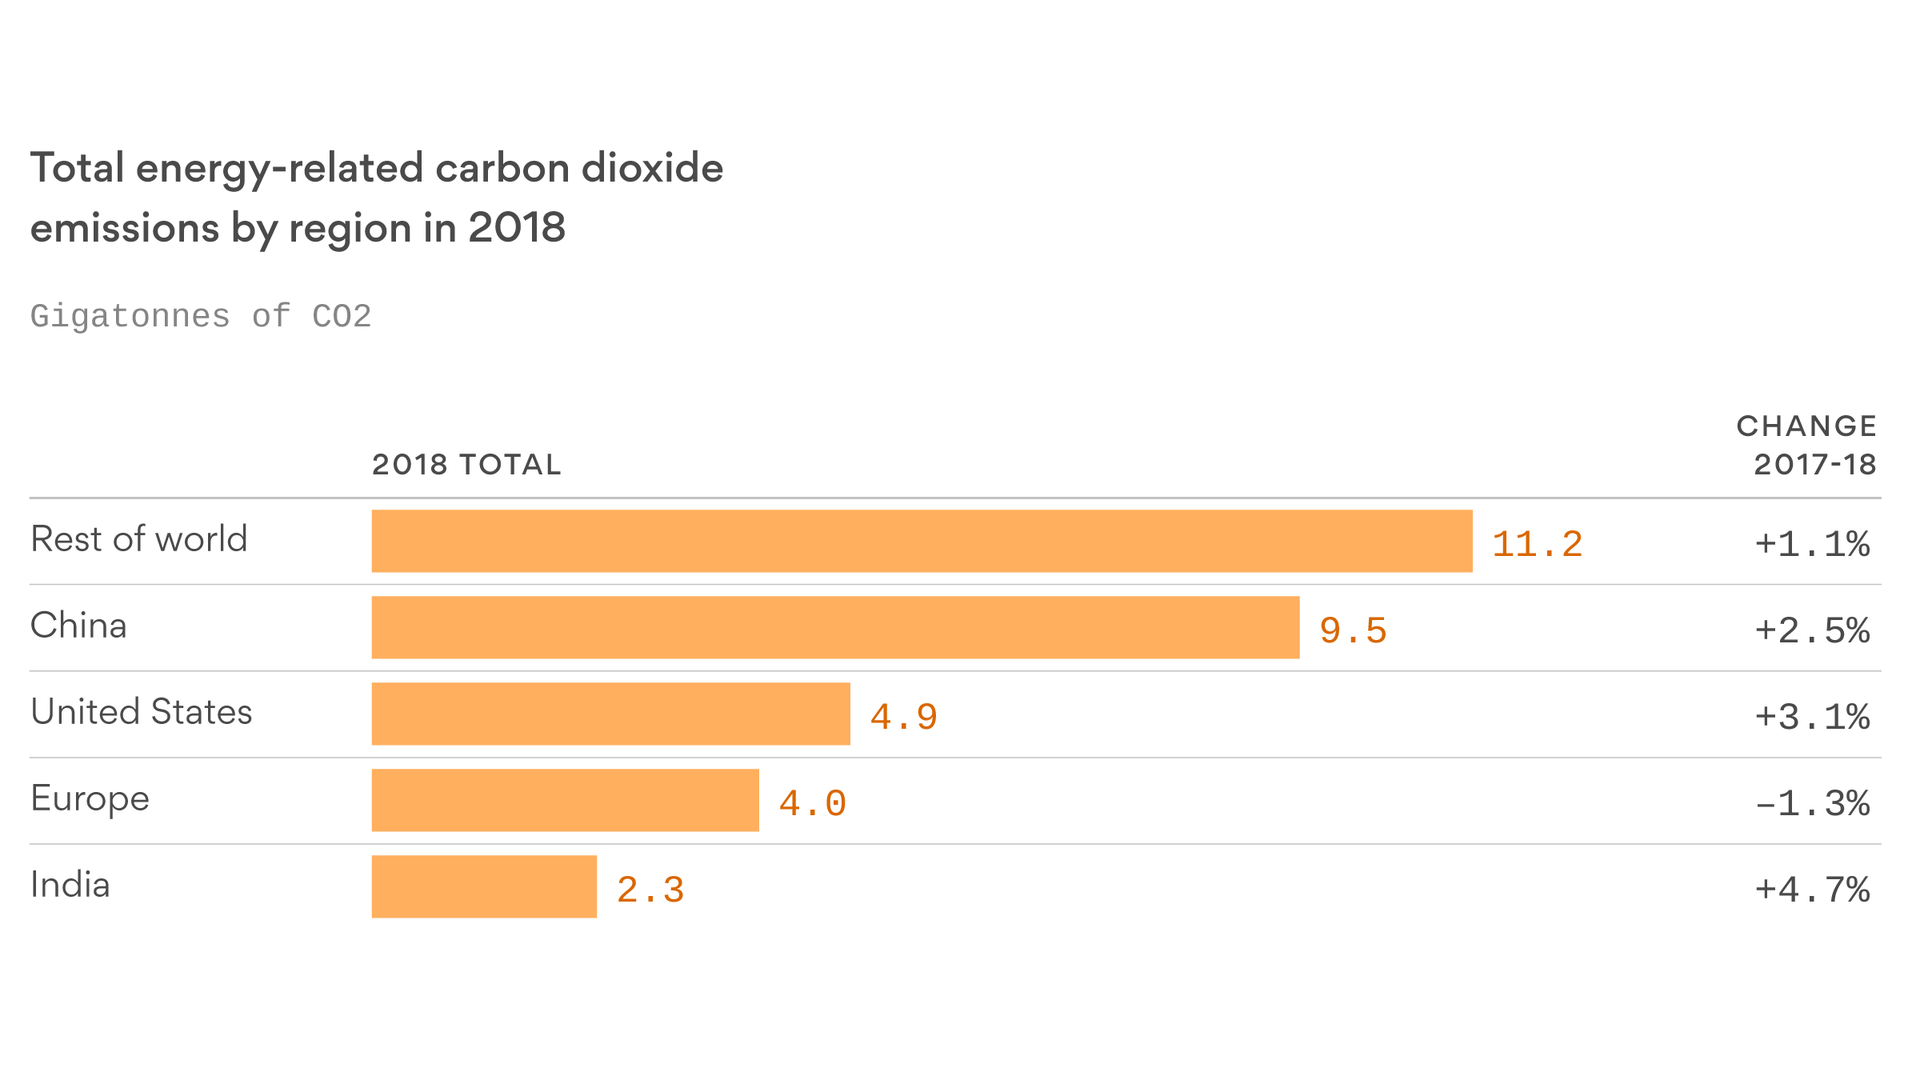 Global carbon dioxide emissions climbed again in 2018